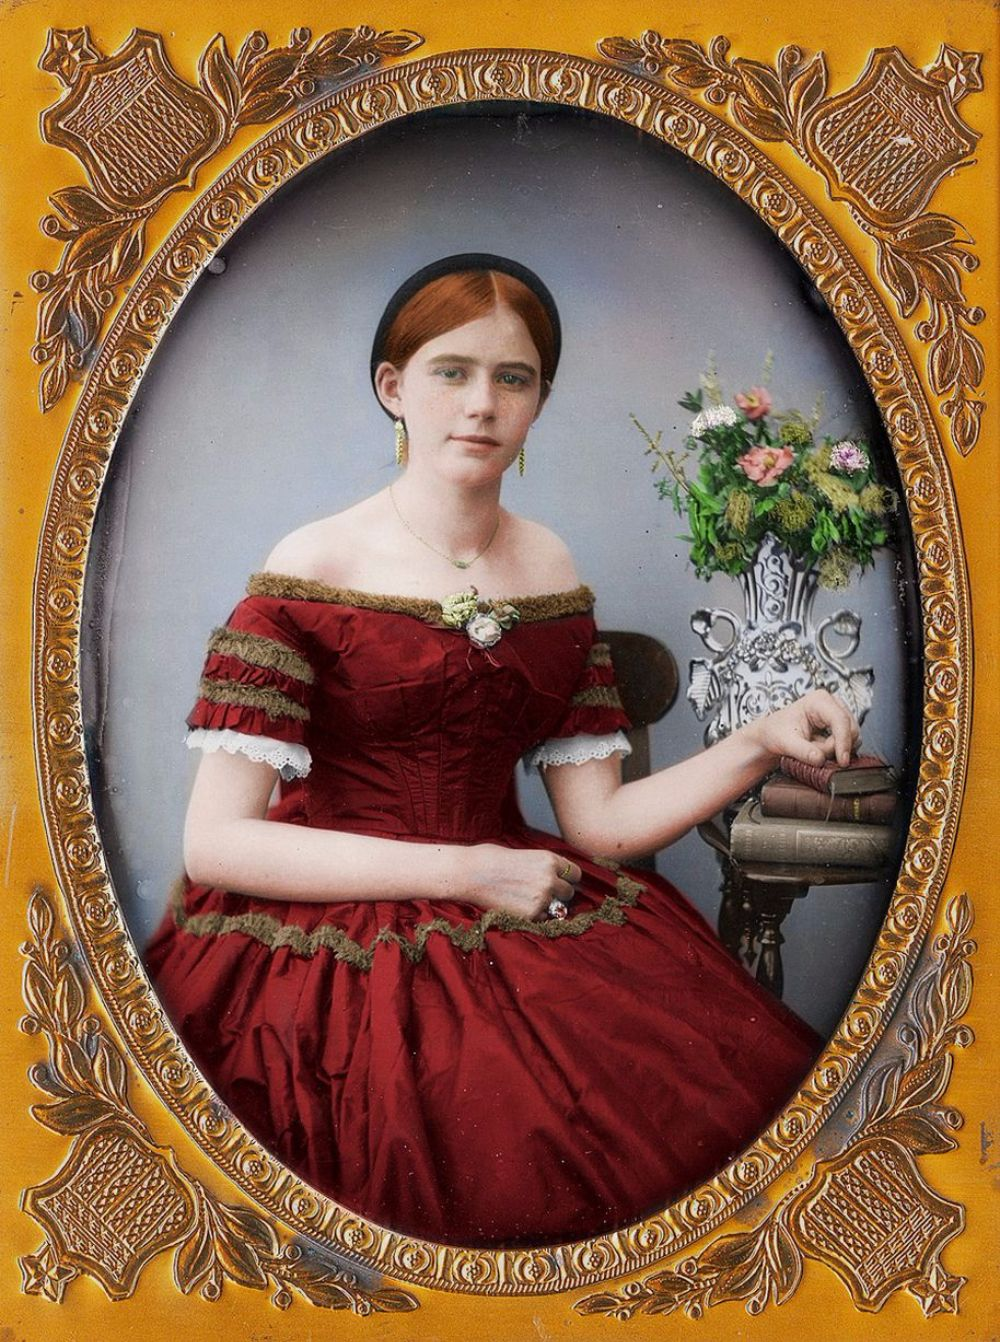 Striking Victorian Portraits Have Been Brought Into the ...Victorian Woman Portrait